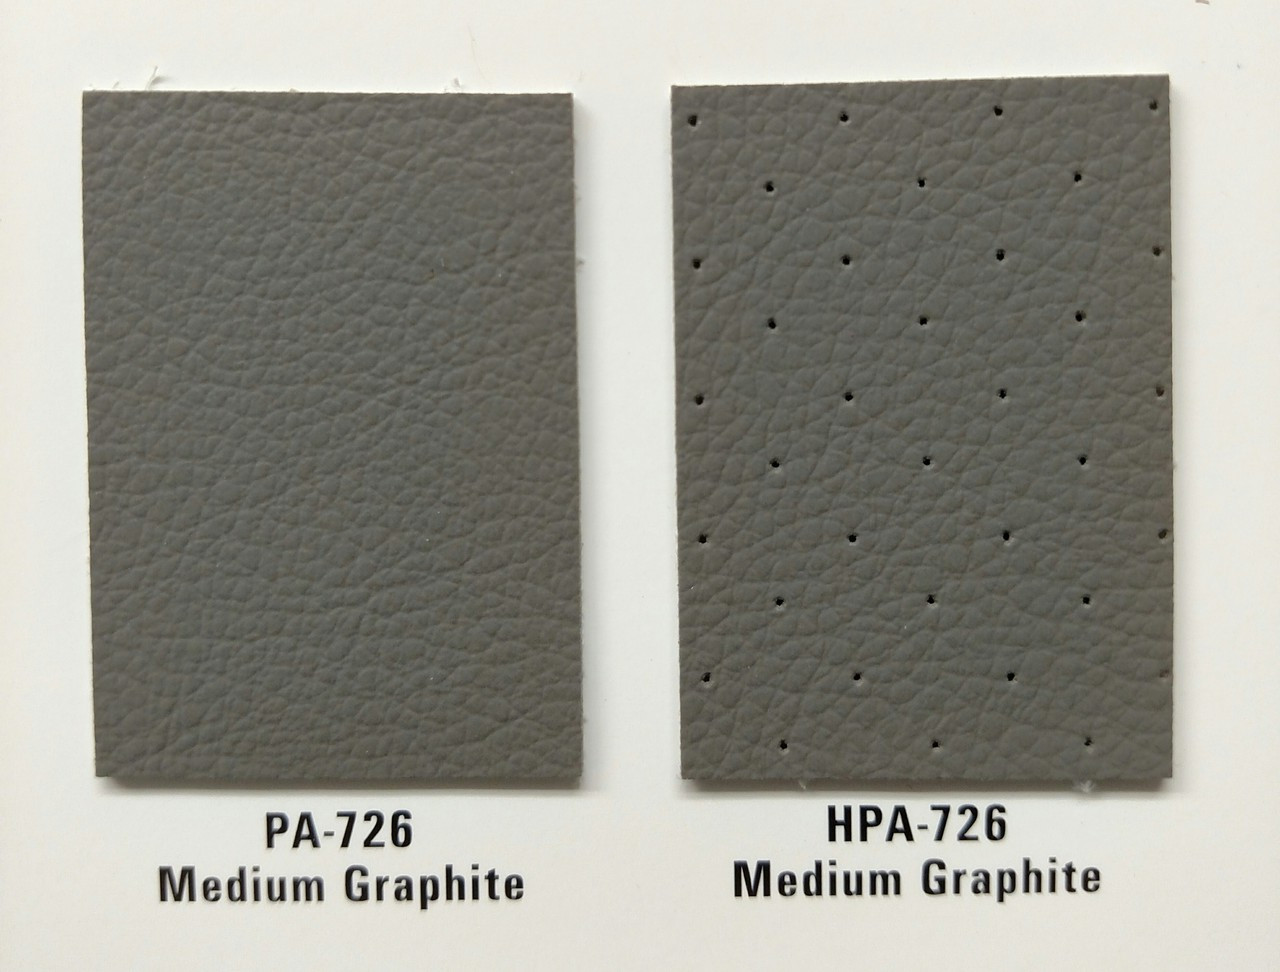 Shown here with PA 726 Medium Graphite